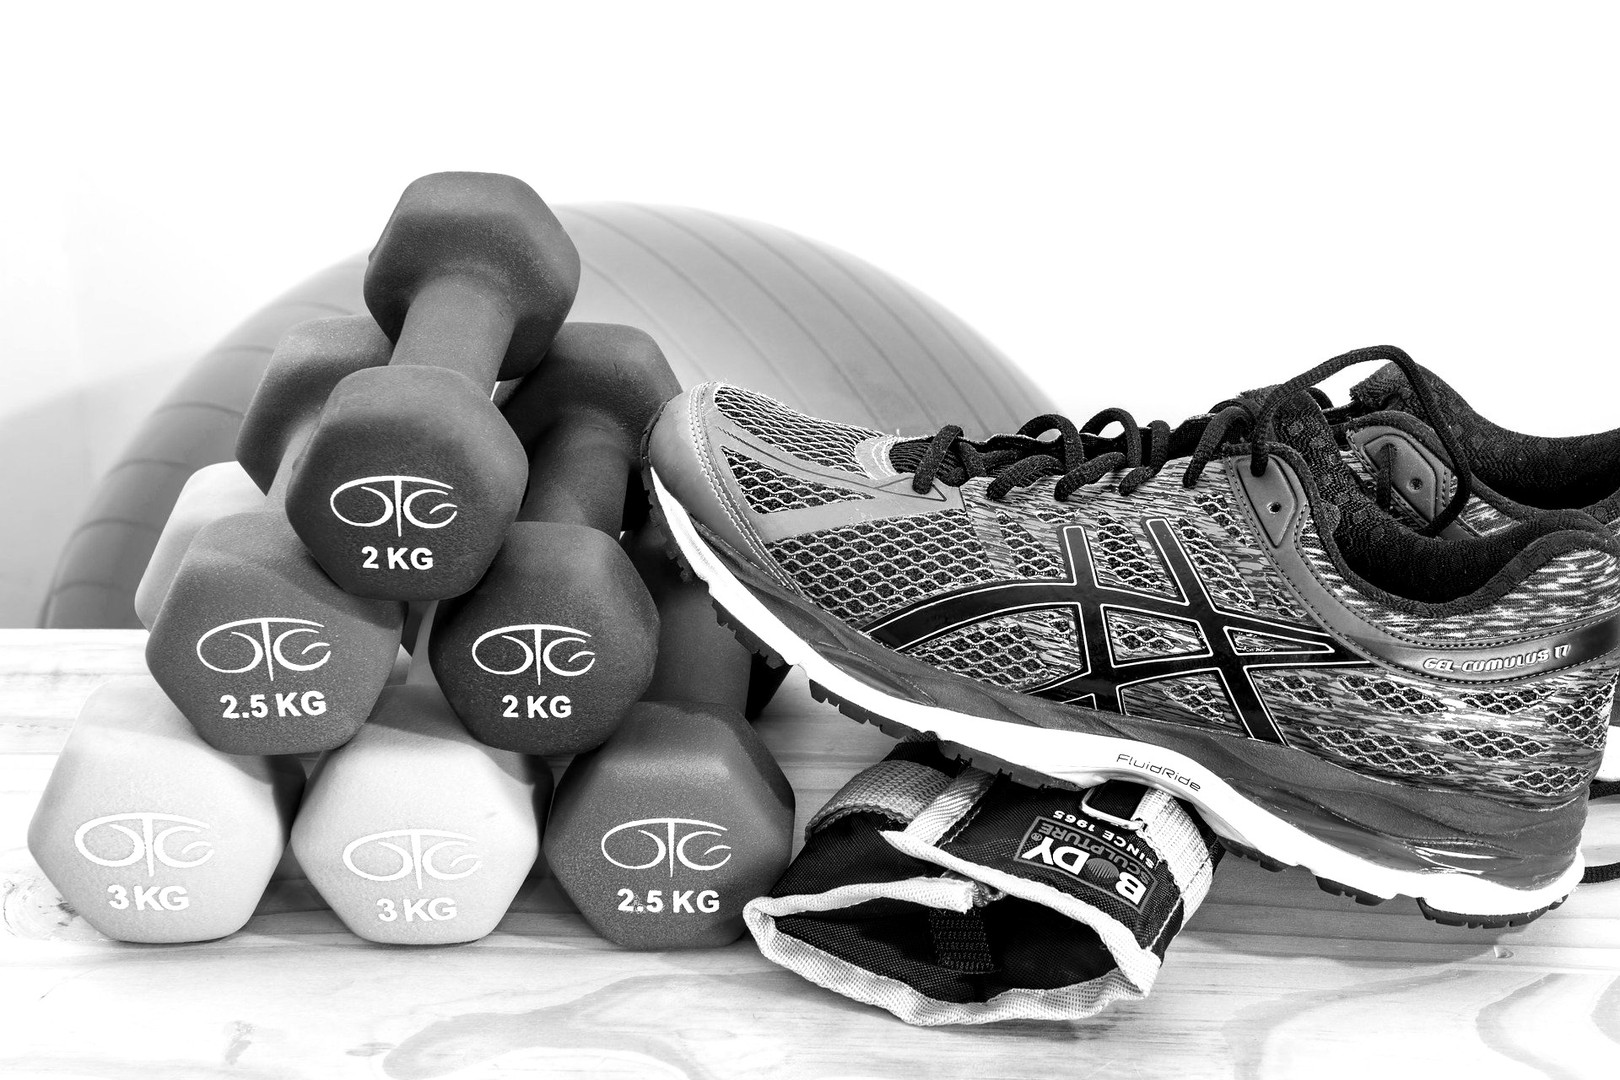 dumbbells-2465478_1920_edited.jpg